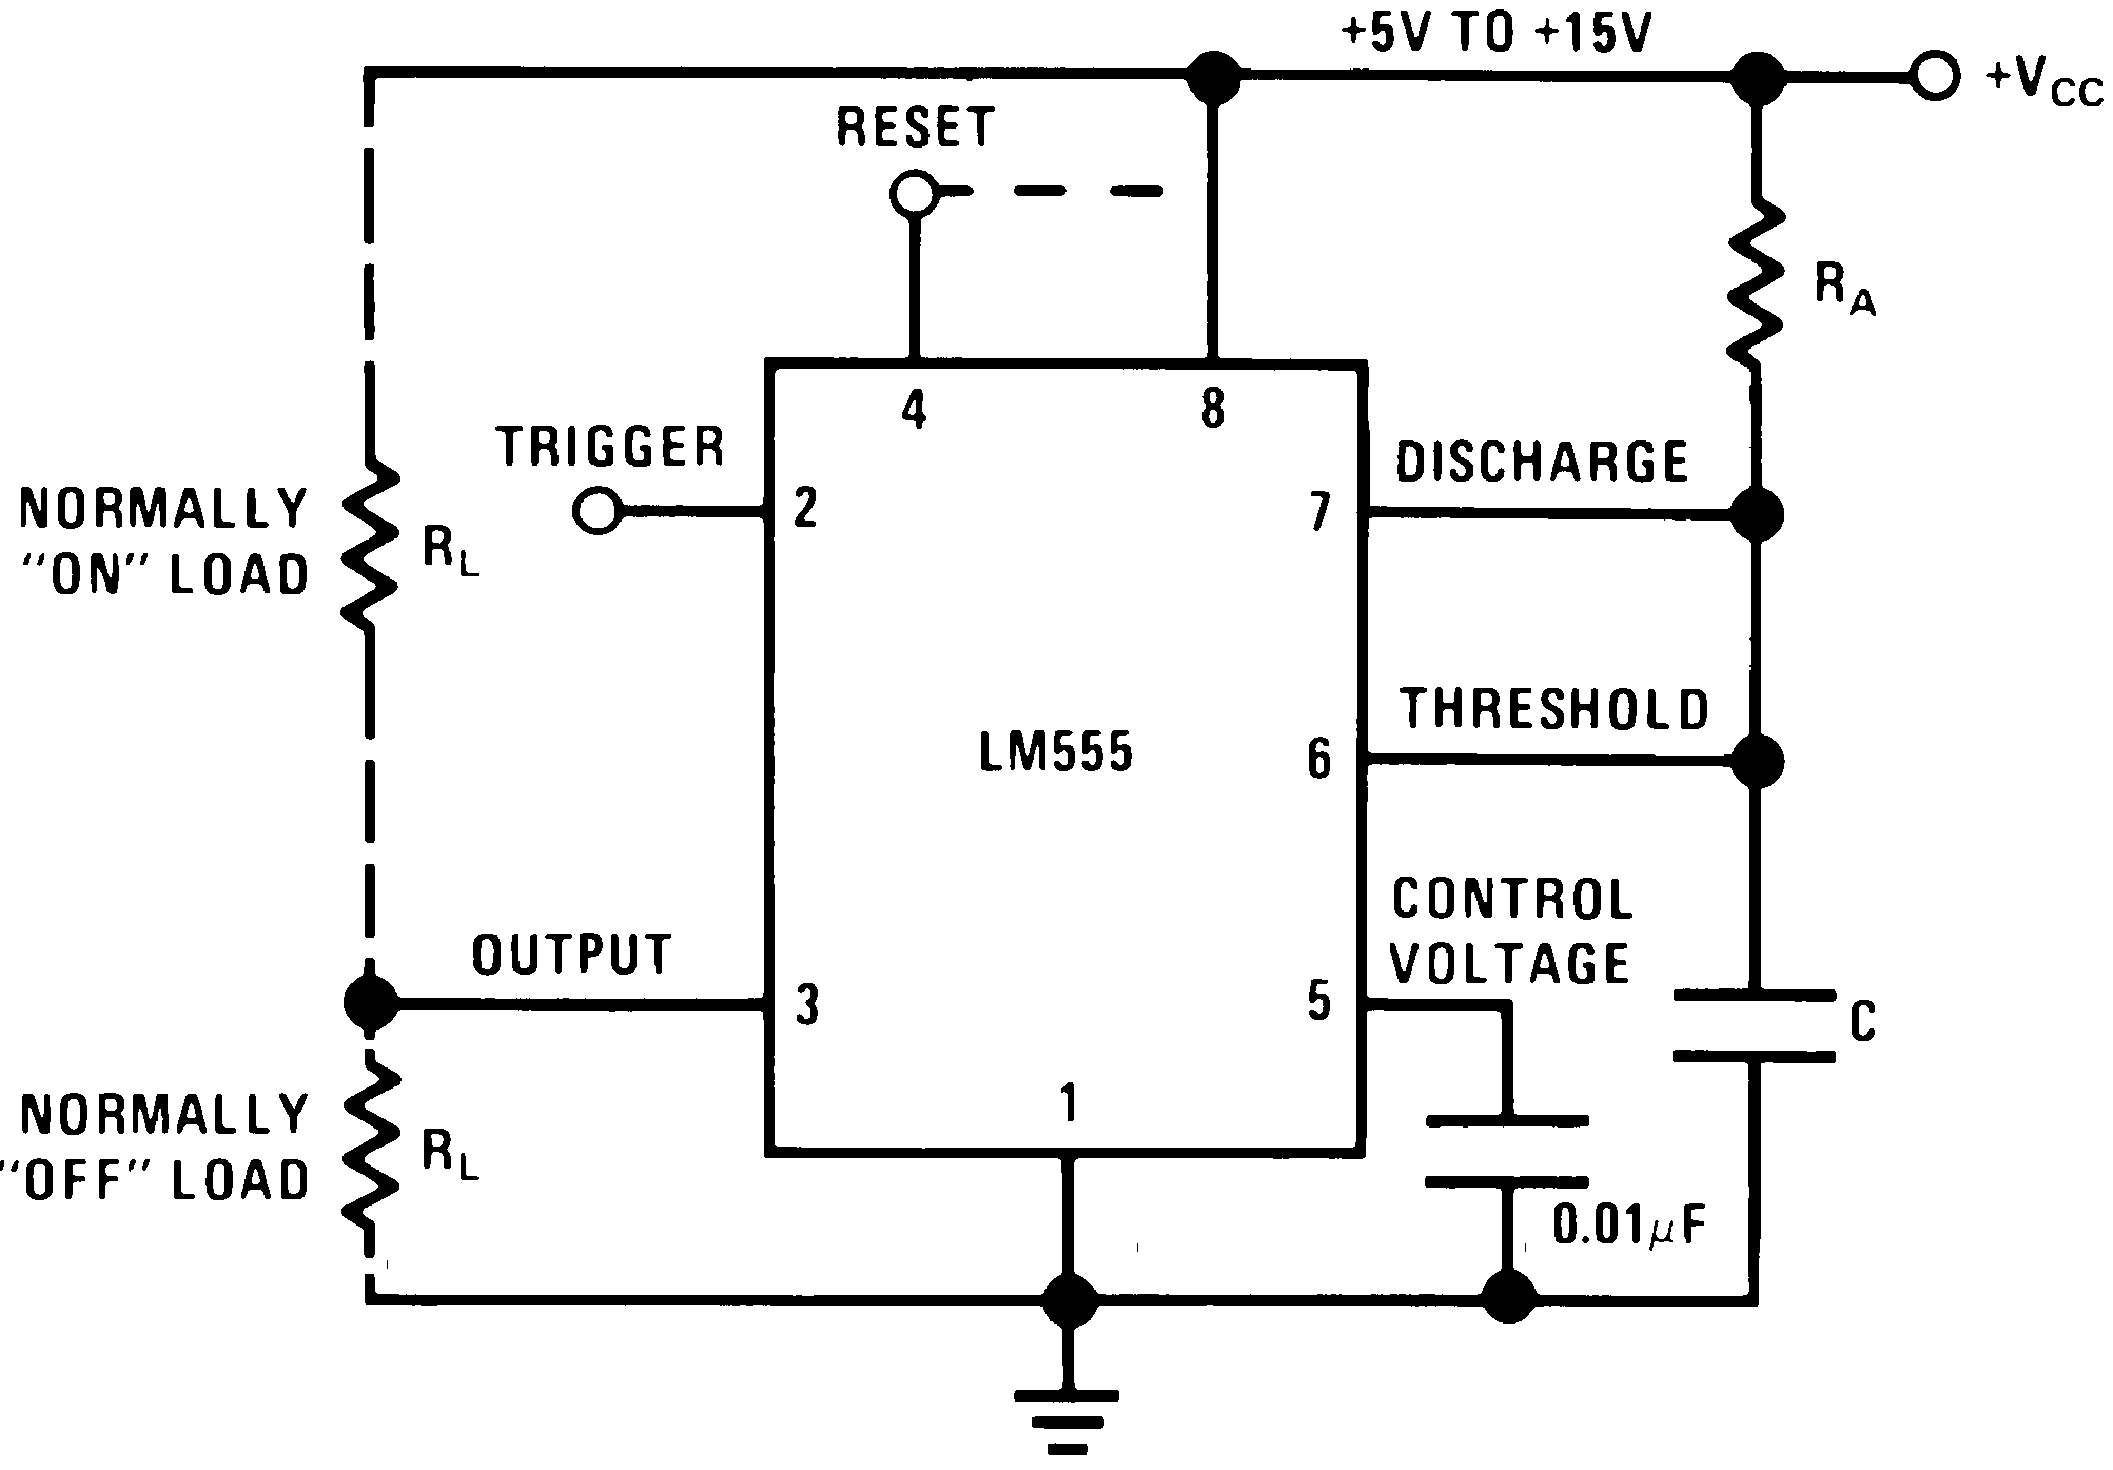 LM555 datasheet Highly stable 555 timer for generating accurate ...